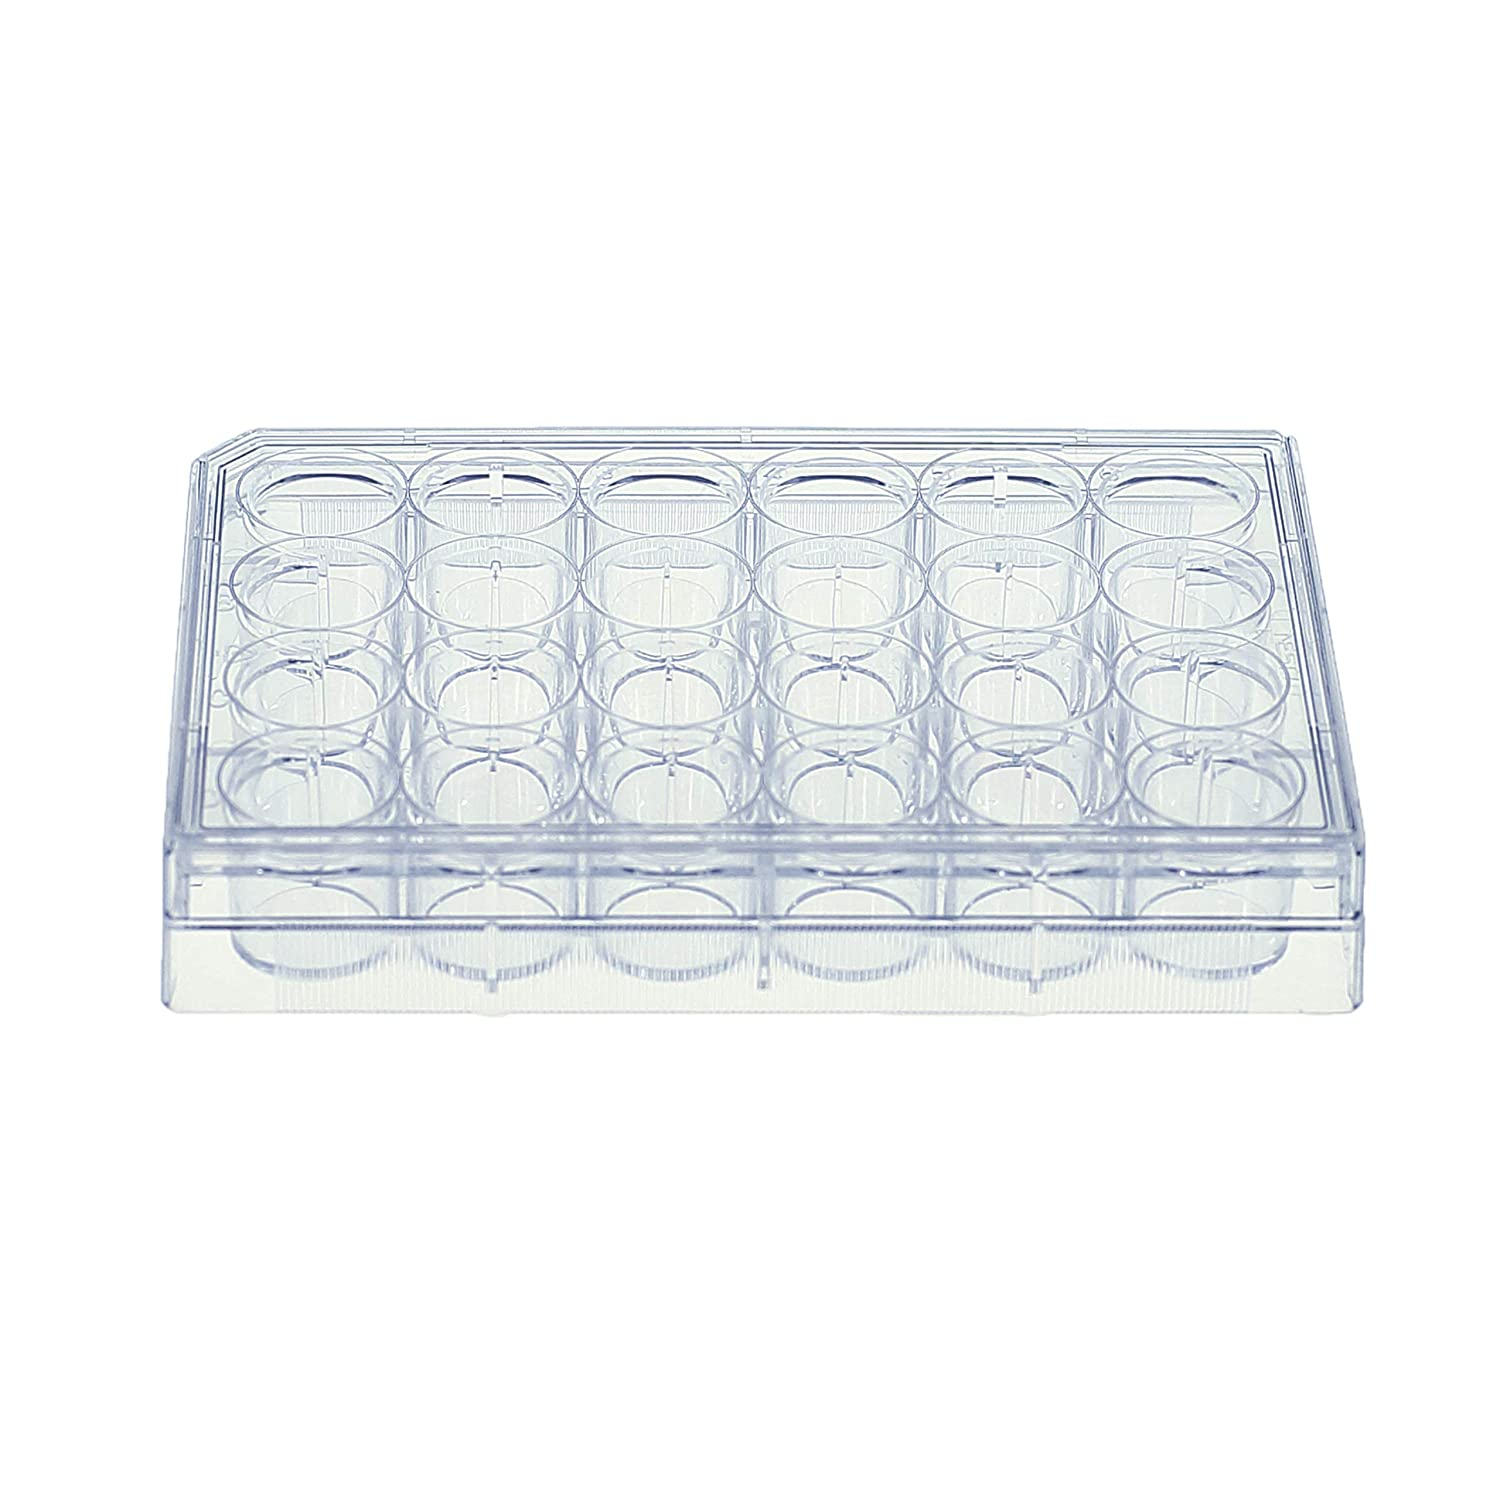 Image of Sapphire 24 Well Tissue Culture Plate for Optimal Cell Culture Growth, Individually Wrapped with Lid, Sterile, 1.9 cm² Growth Area, 50 Treated Cell Culture Plates per case Cell Culture Dishes